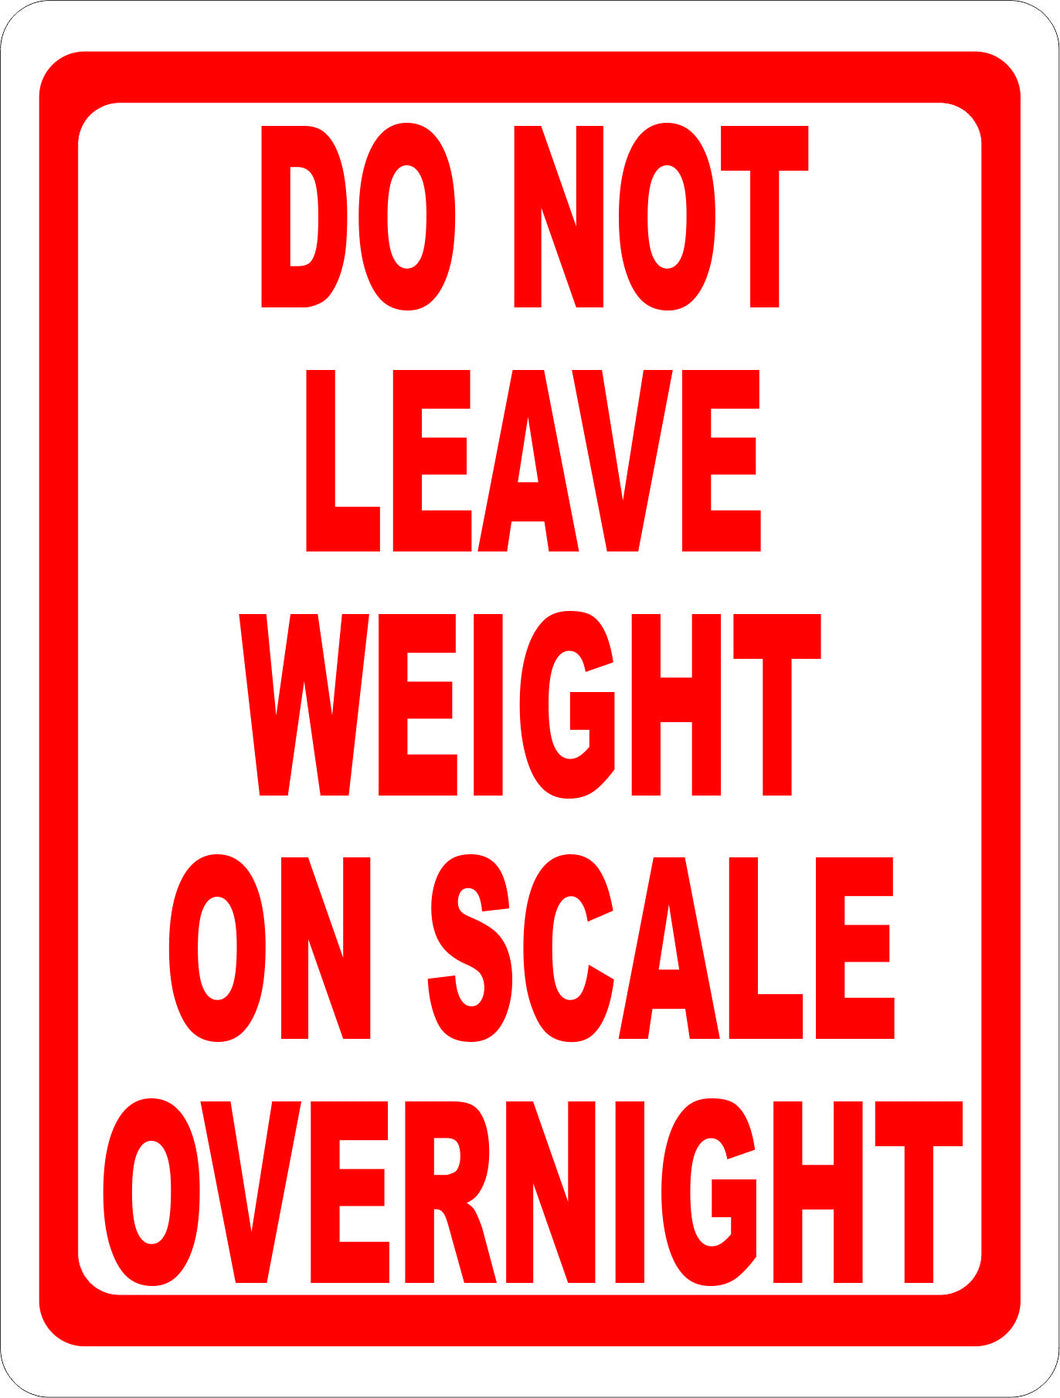 Do Not Leave Weight on Scale Overnight Sign - Signs & Decals by SalaGraphics